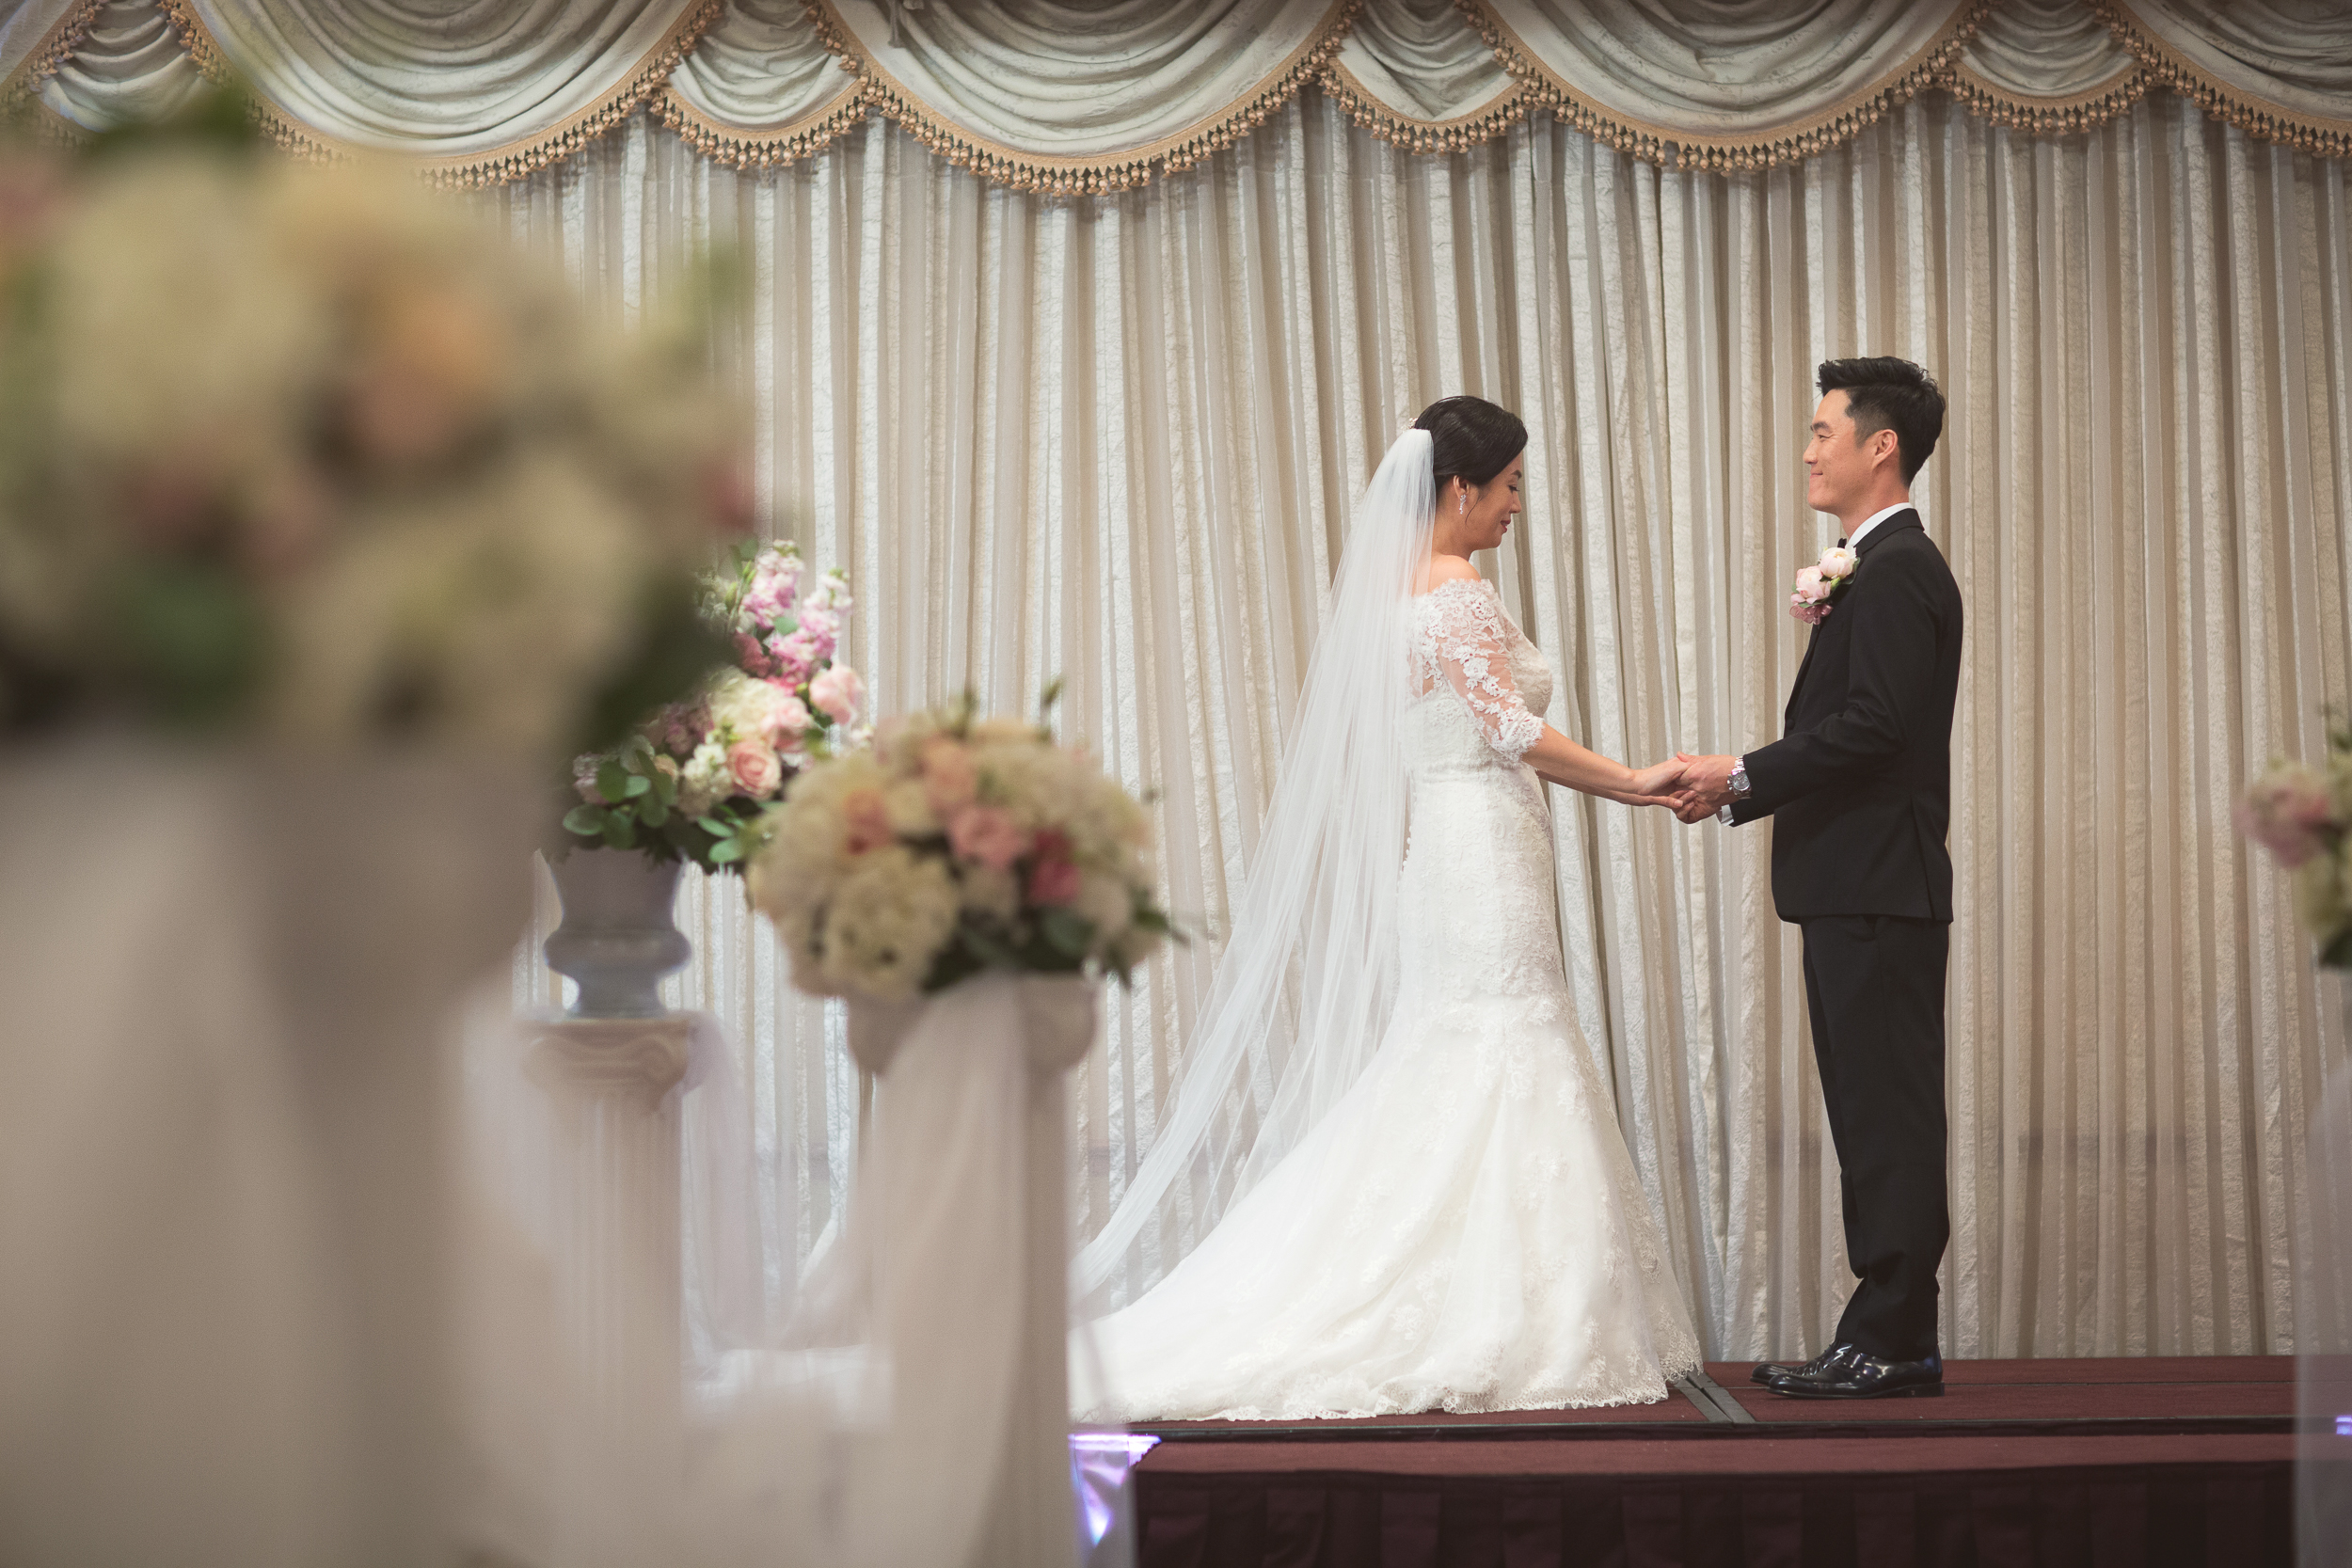 59_Ji Young Choi & Kyungmin Song Wedding